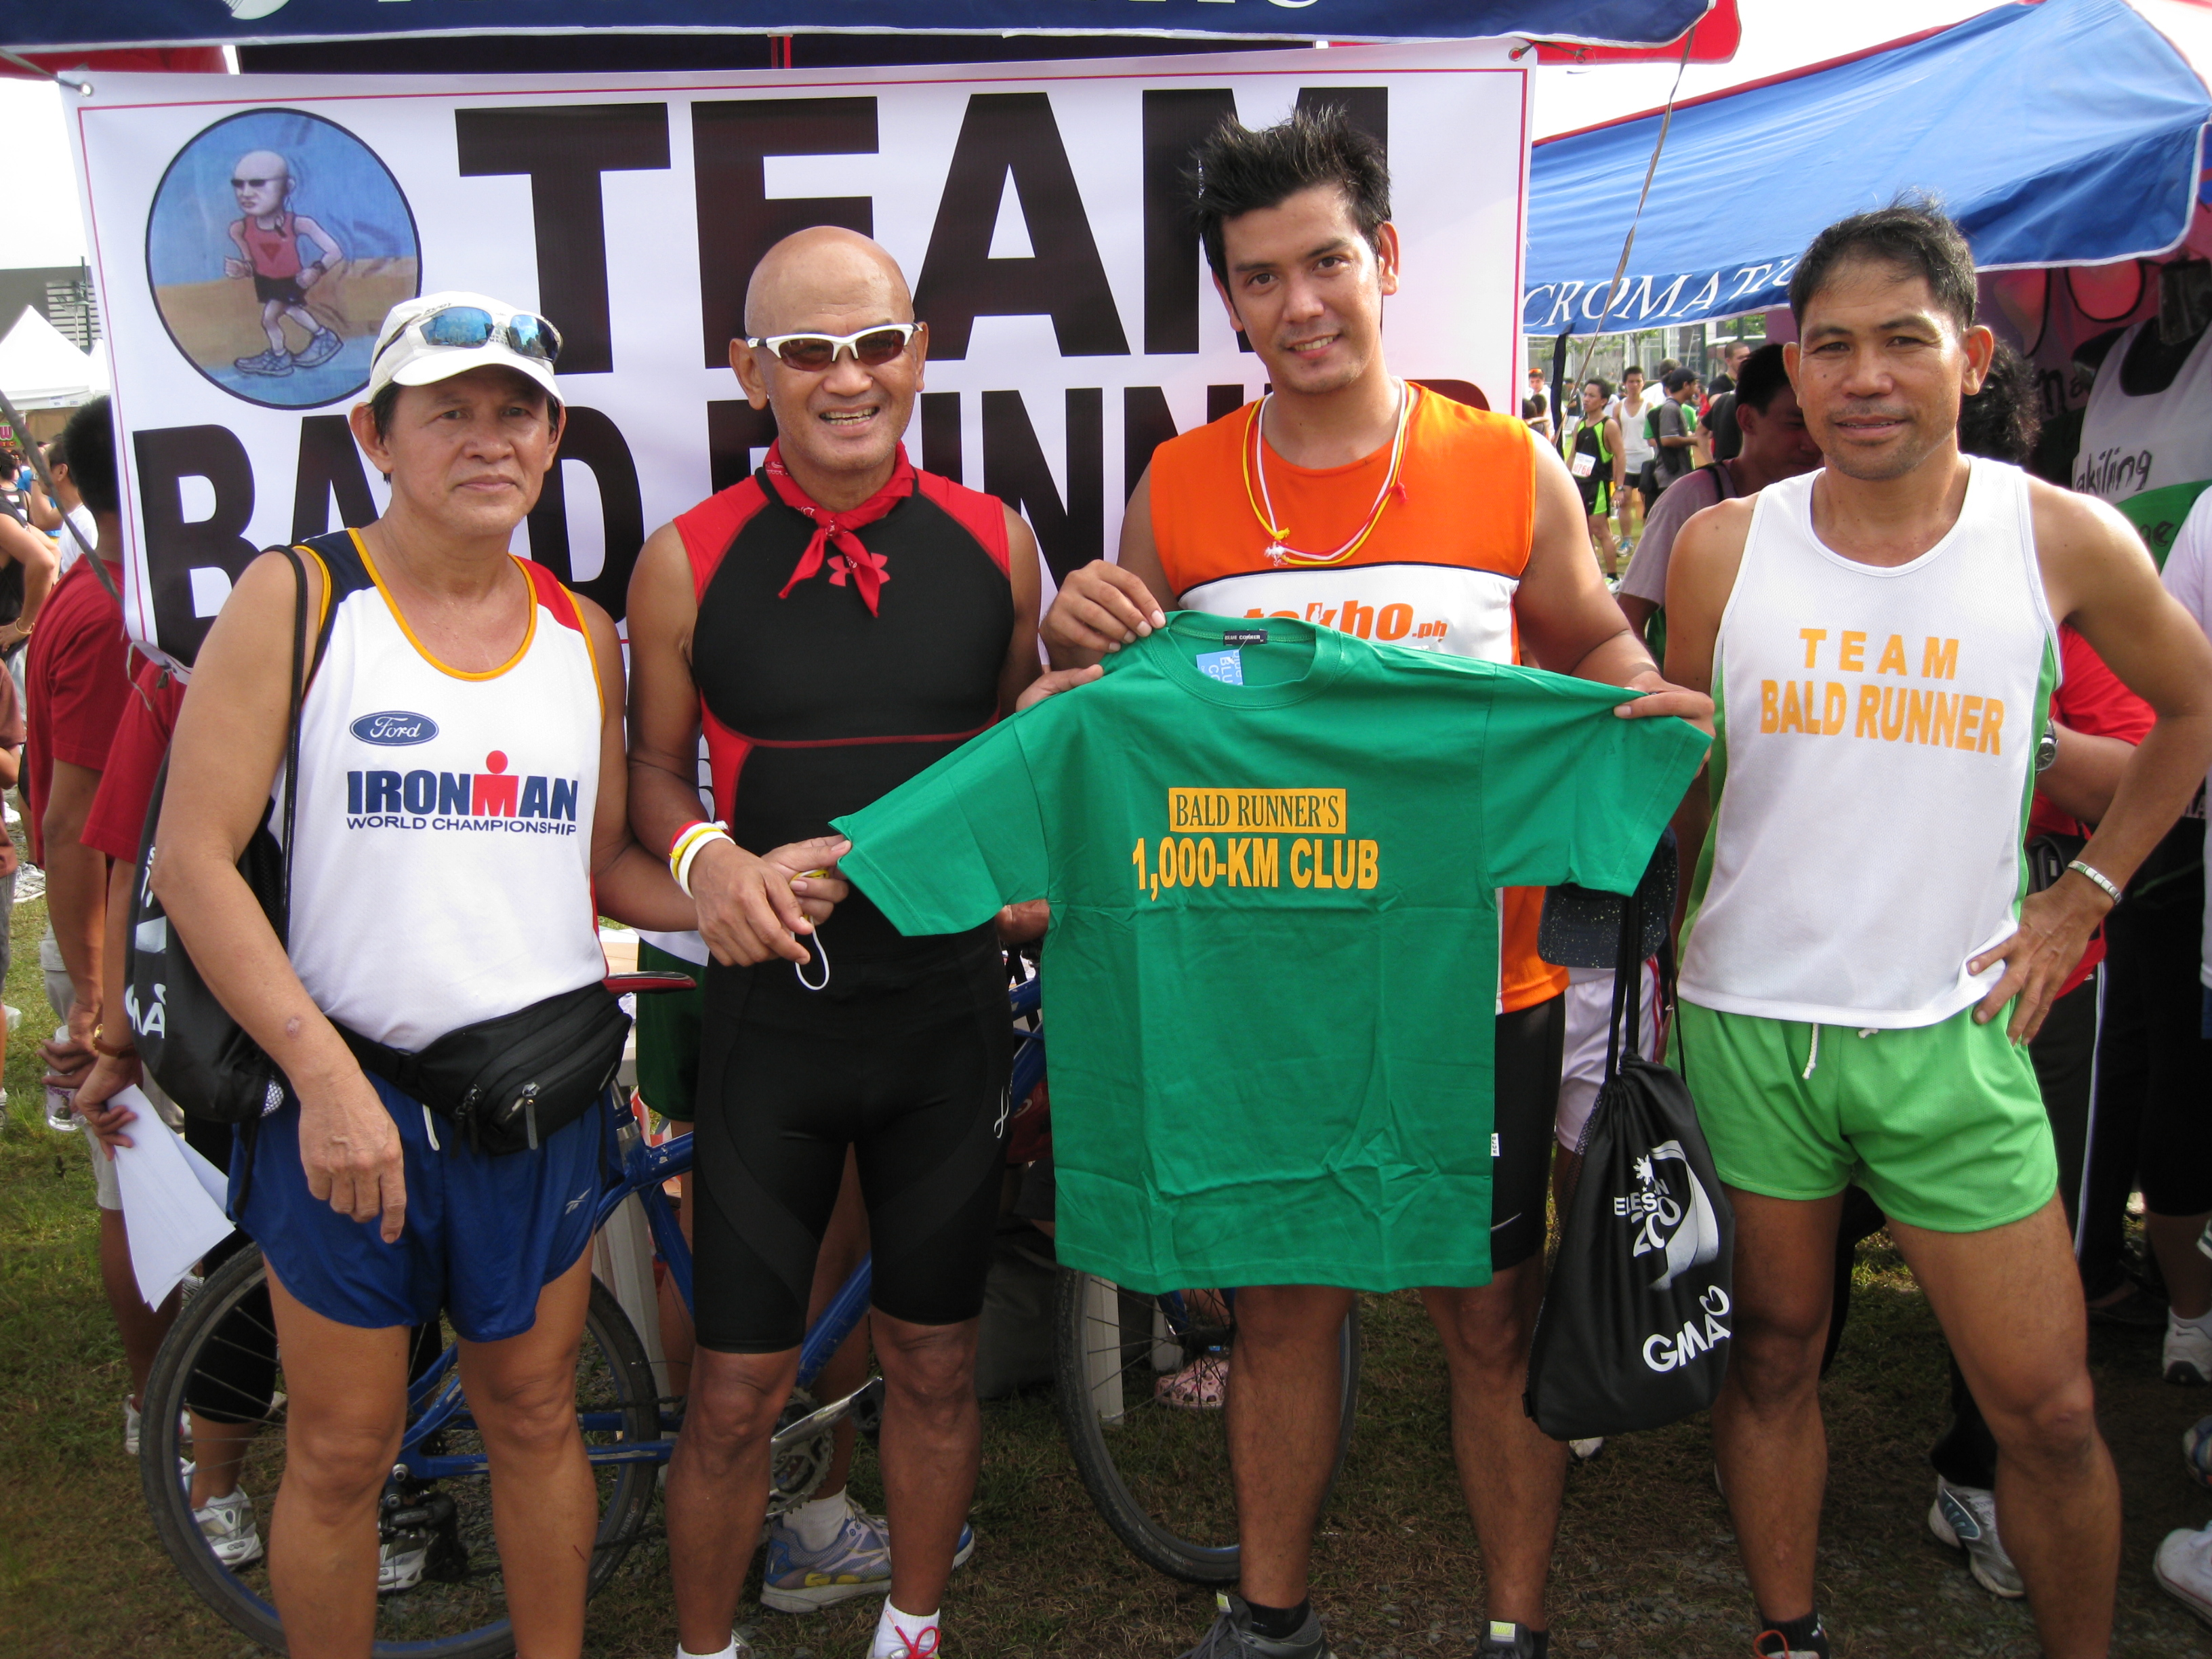 """Awarded """"1,000-Km Club"""" Finisher's T-Shirt To Joseph (On my left side)"""